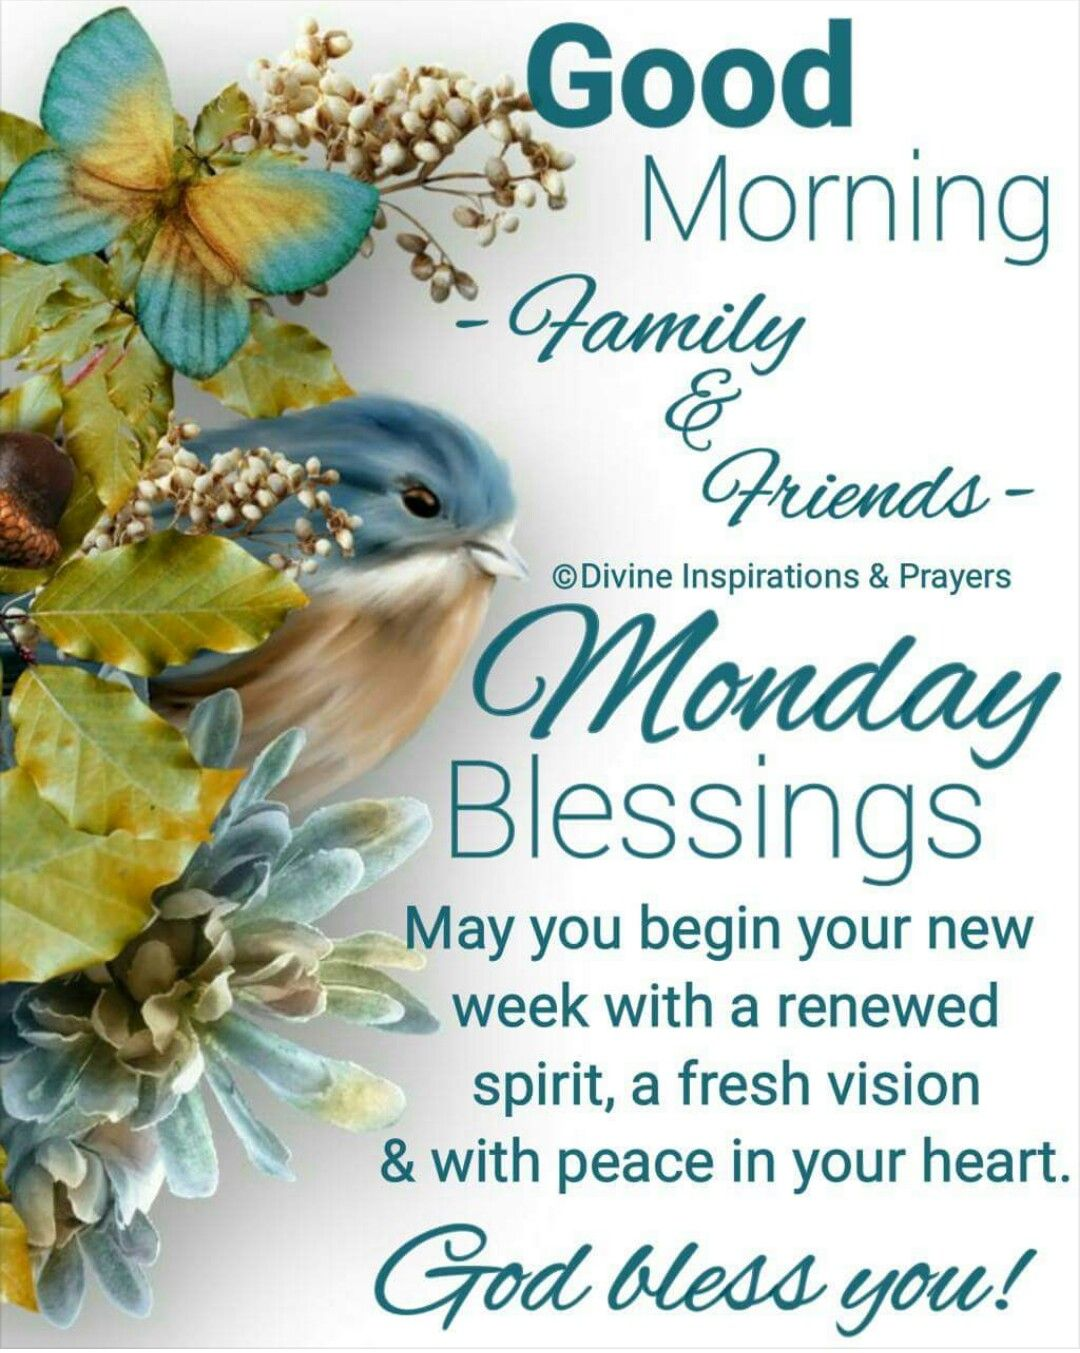 Monday Blessings Good Morning Monday Blessings Morning Quotes